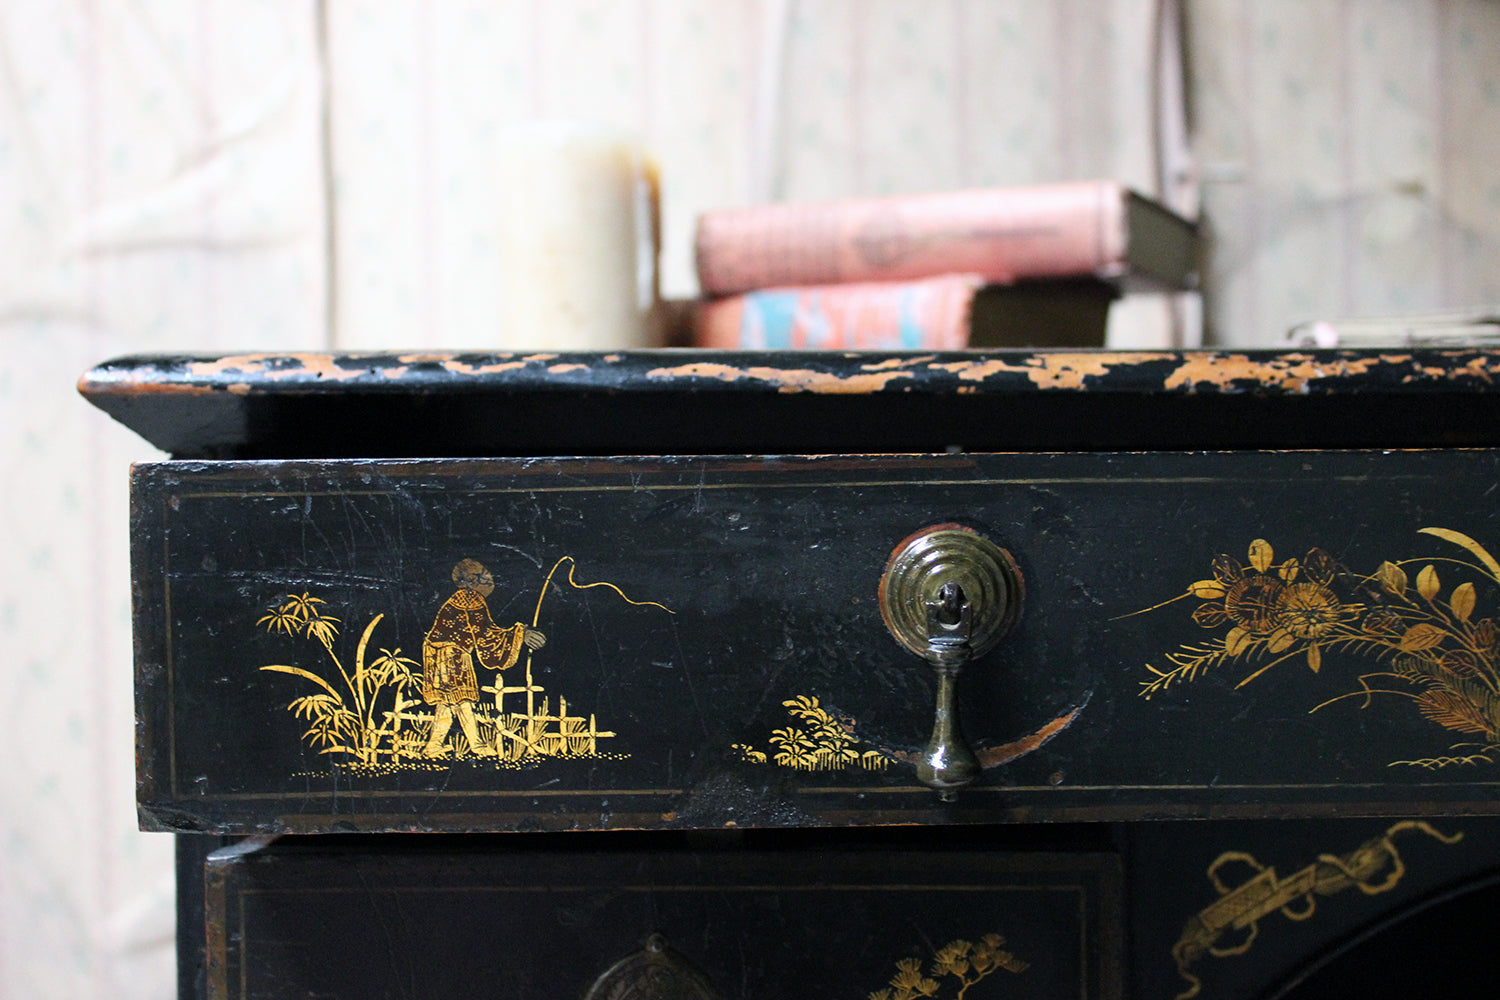 A George III Black Japanned & Chinoiserie Decorated Kneehole Desk c.1790